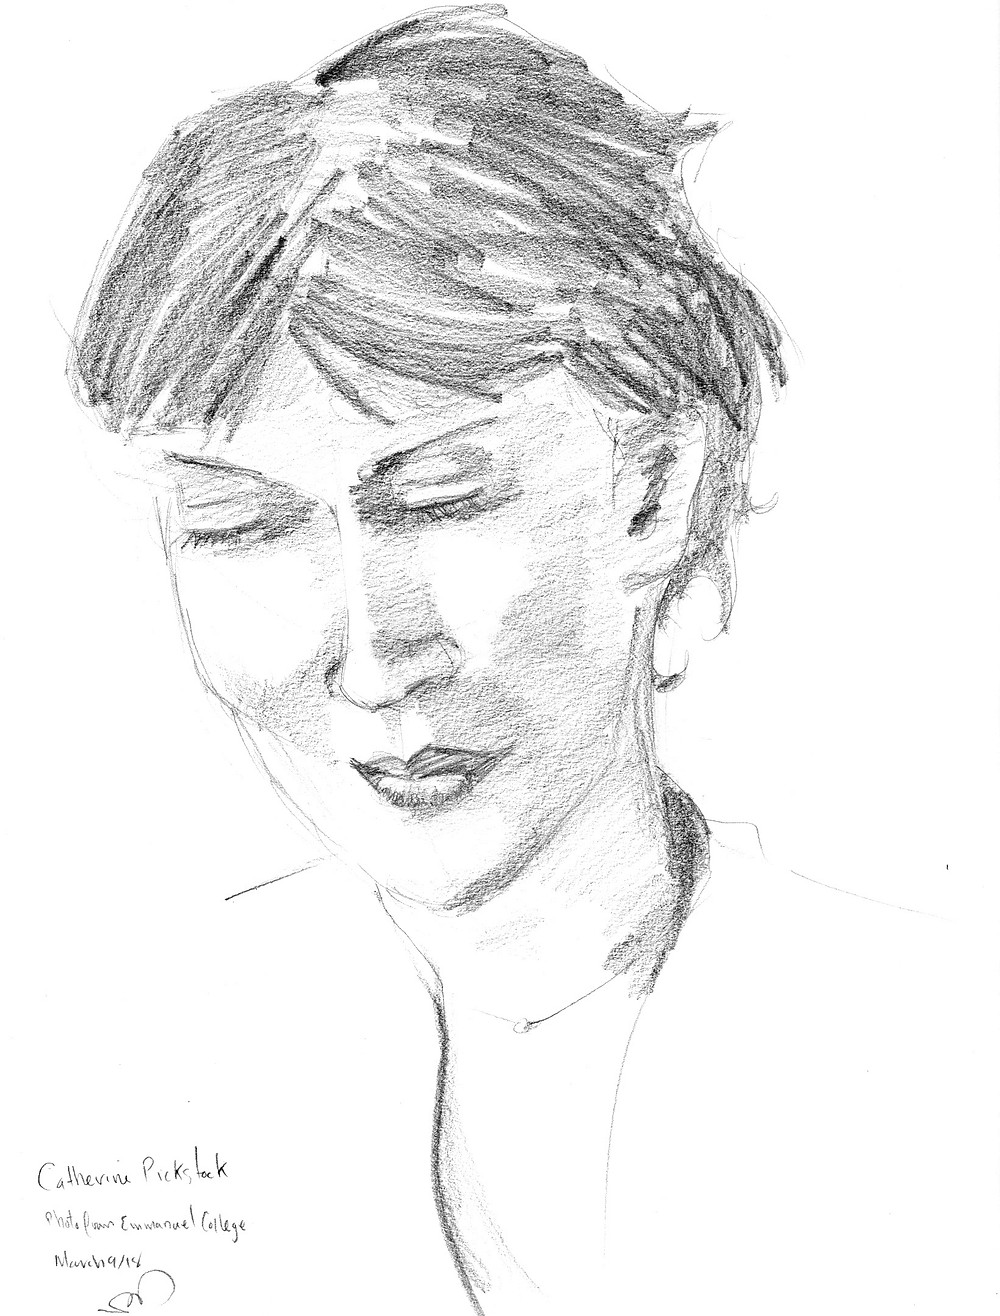 Catherine Pickstock, graphite sketch